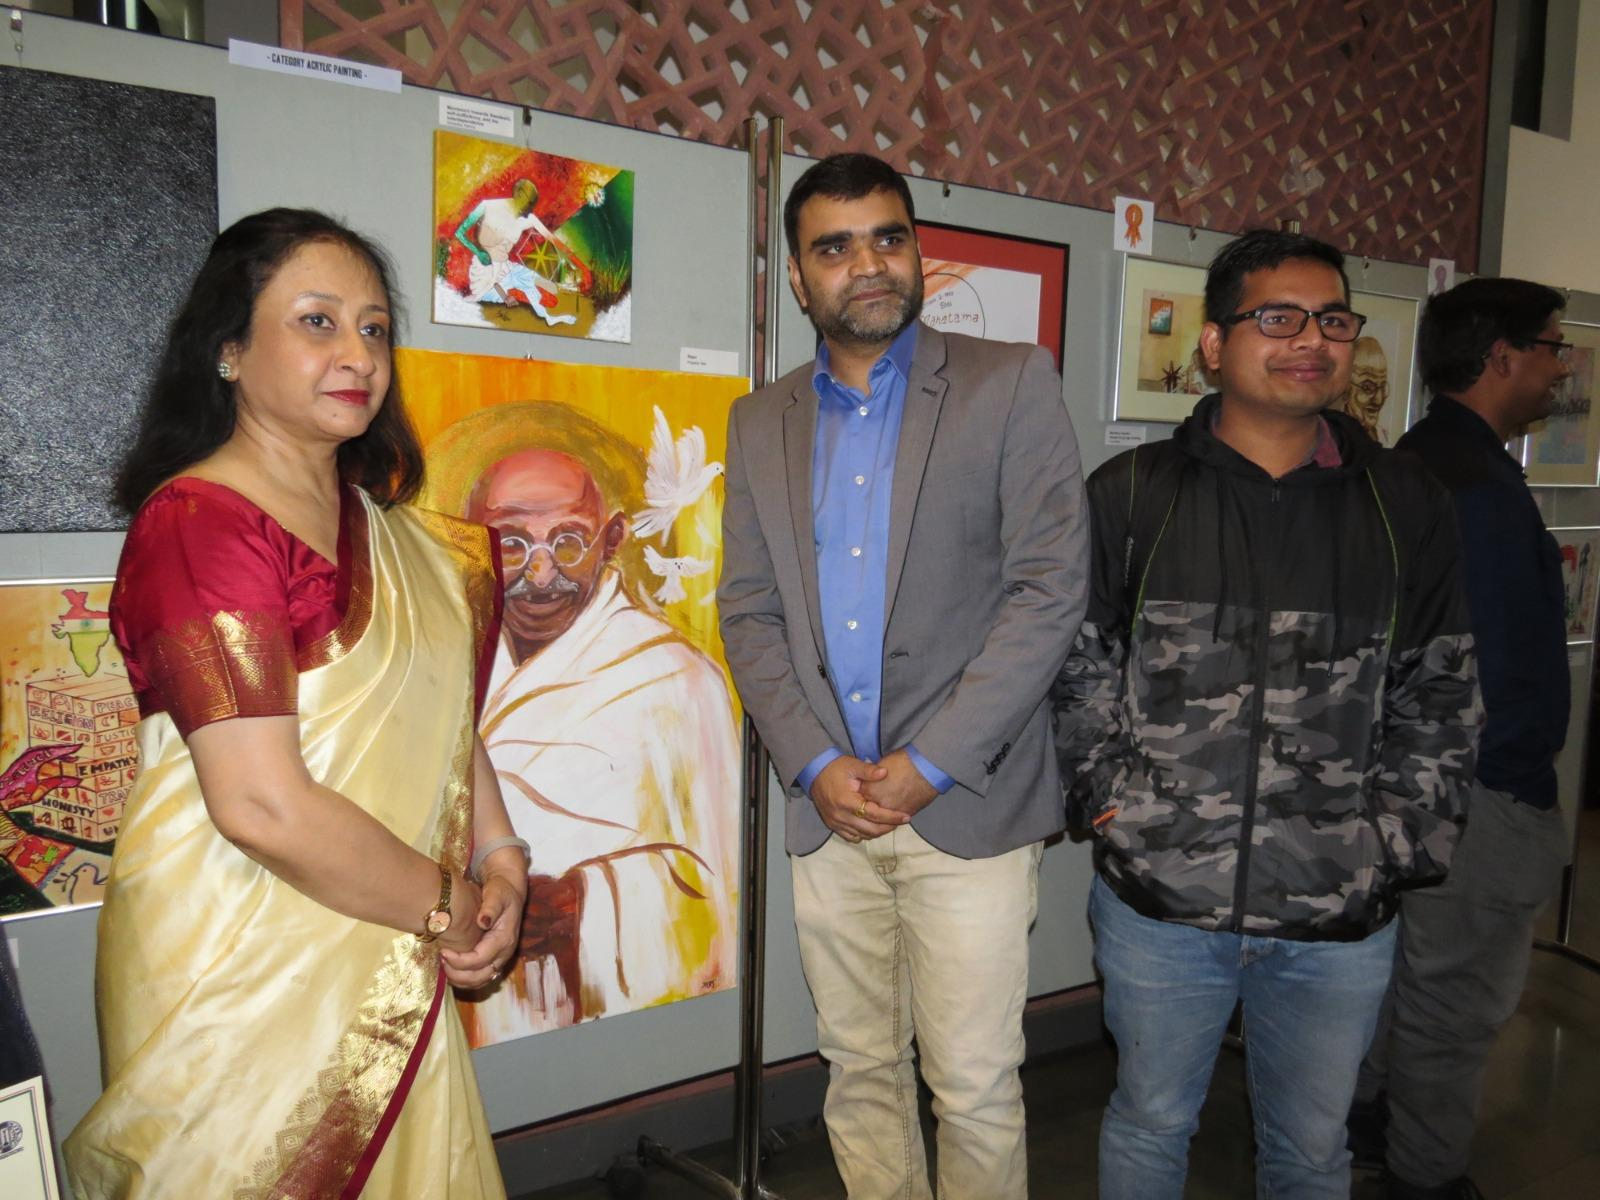 Mukta Dutta Tomar (L), India's Ambassador to Germany, inaugurated an art exhibition commemorating the 150th birth anniversary of Mahatma Gandhi at the Embassy of India, Berlin on October 2, 2019. (Photo: Embassy of India in Berlin, Germany)